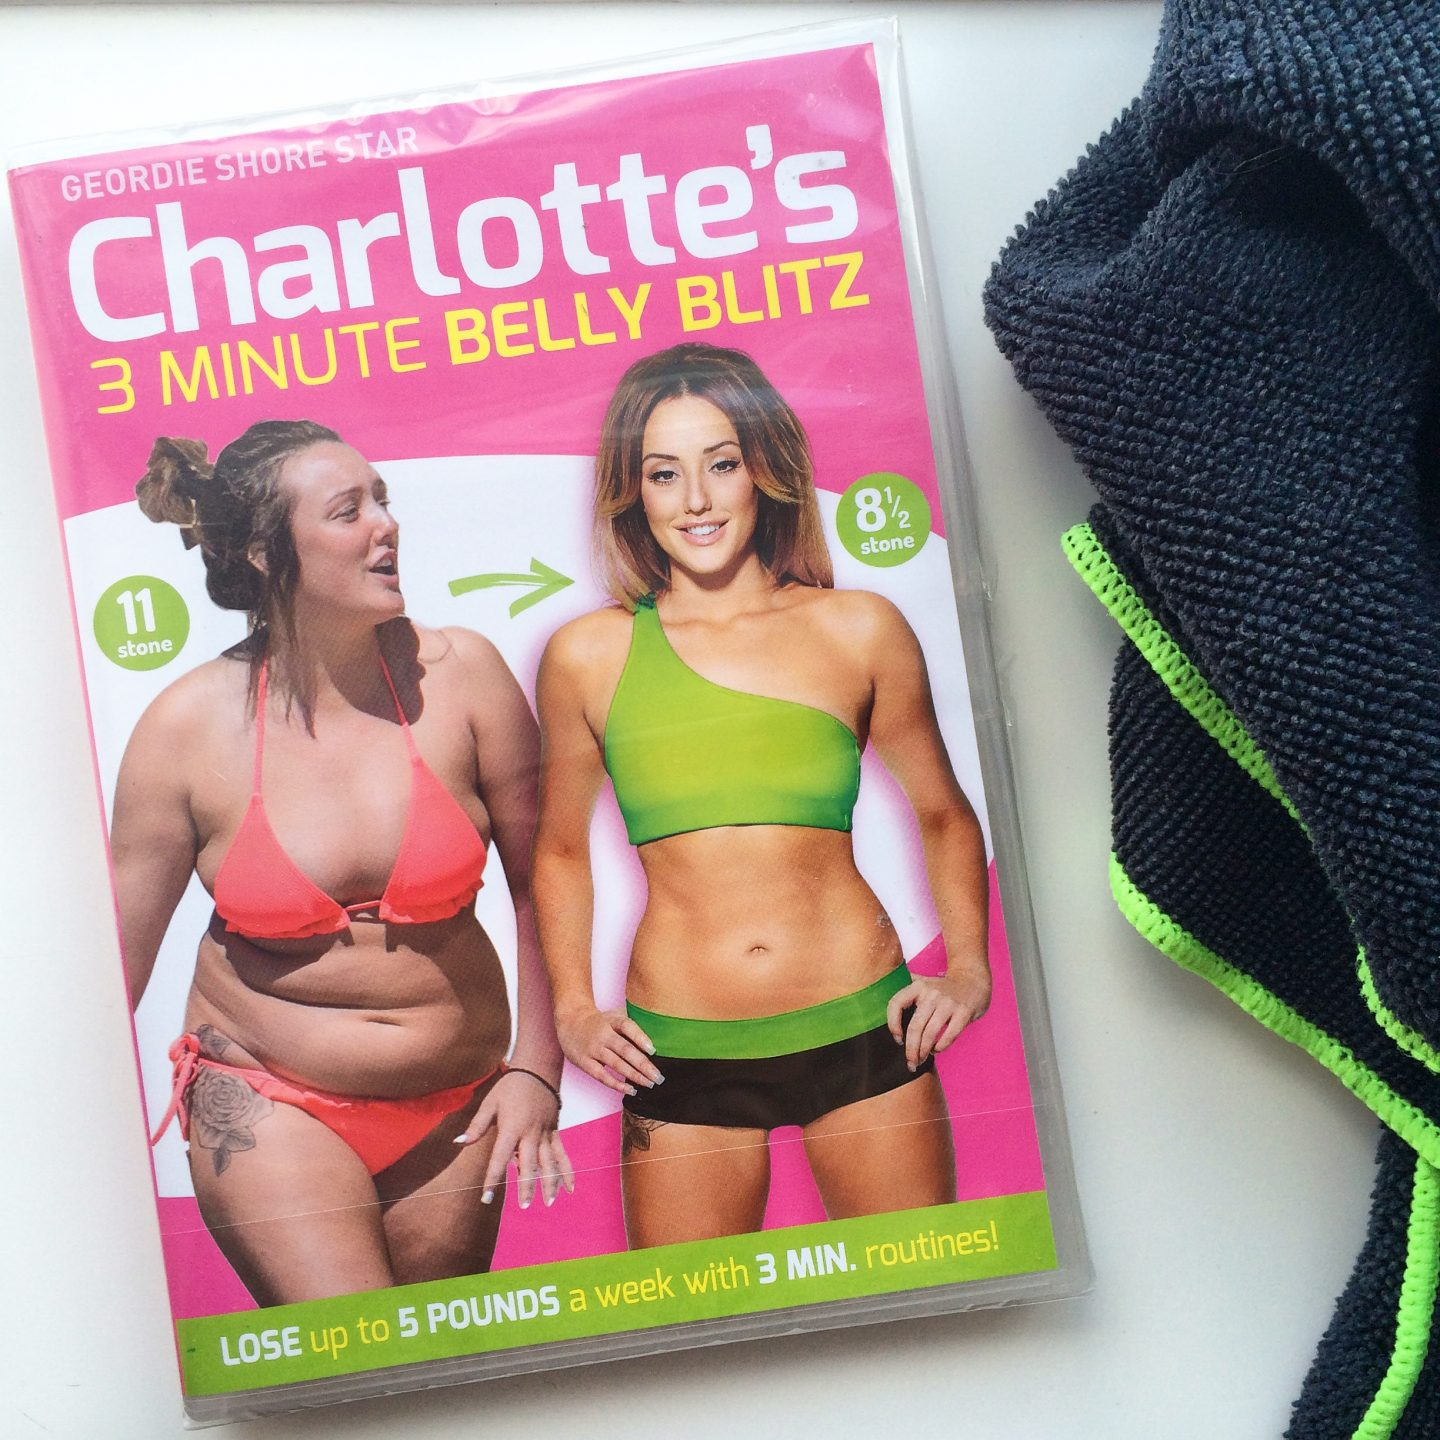 Let's Get Fit With Charlotte Crosby!